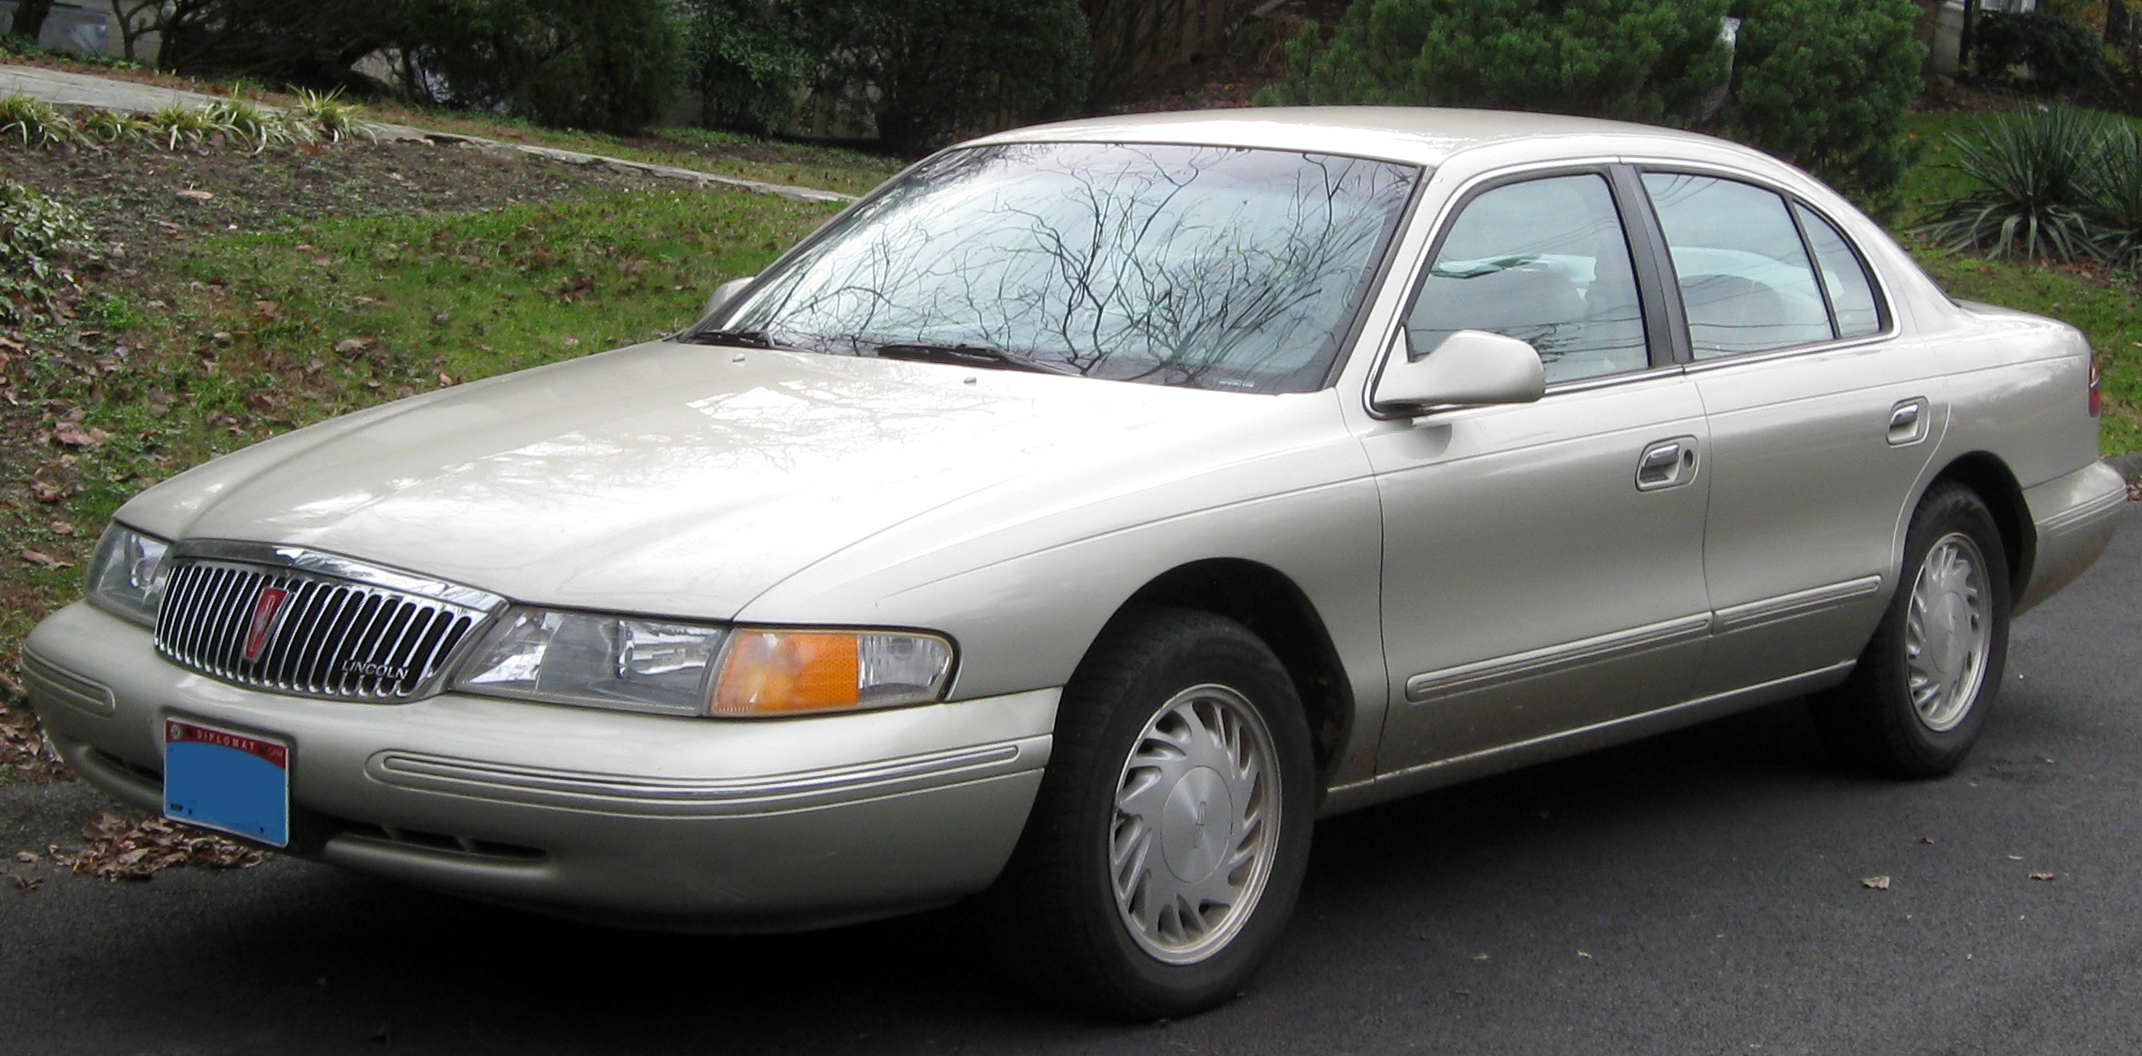 1993 Lincoln Continental Image 3